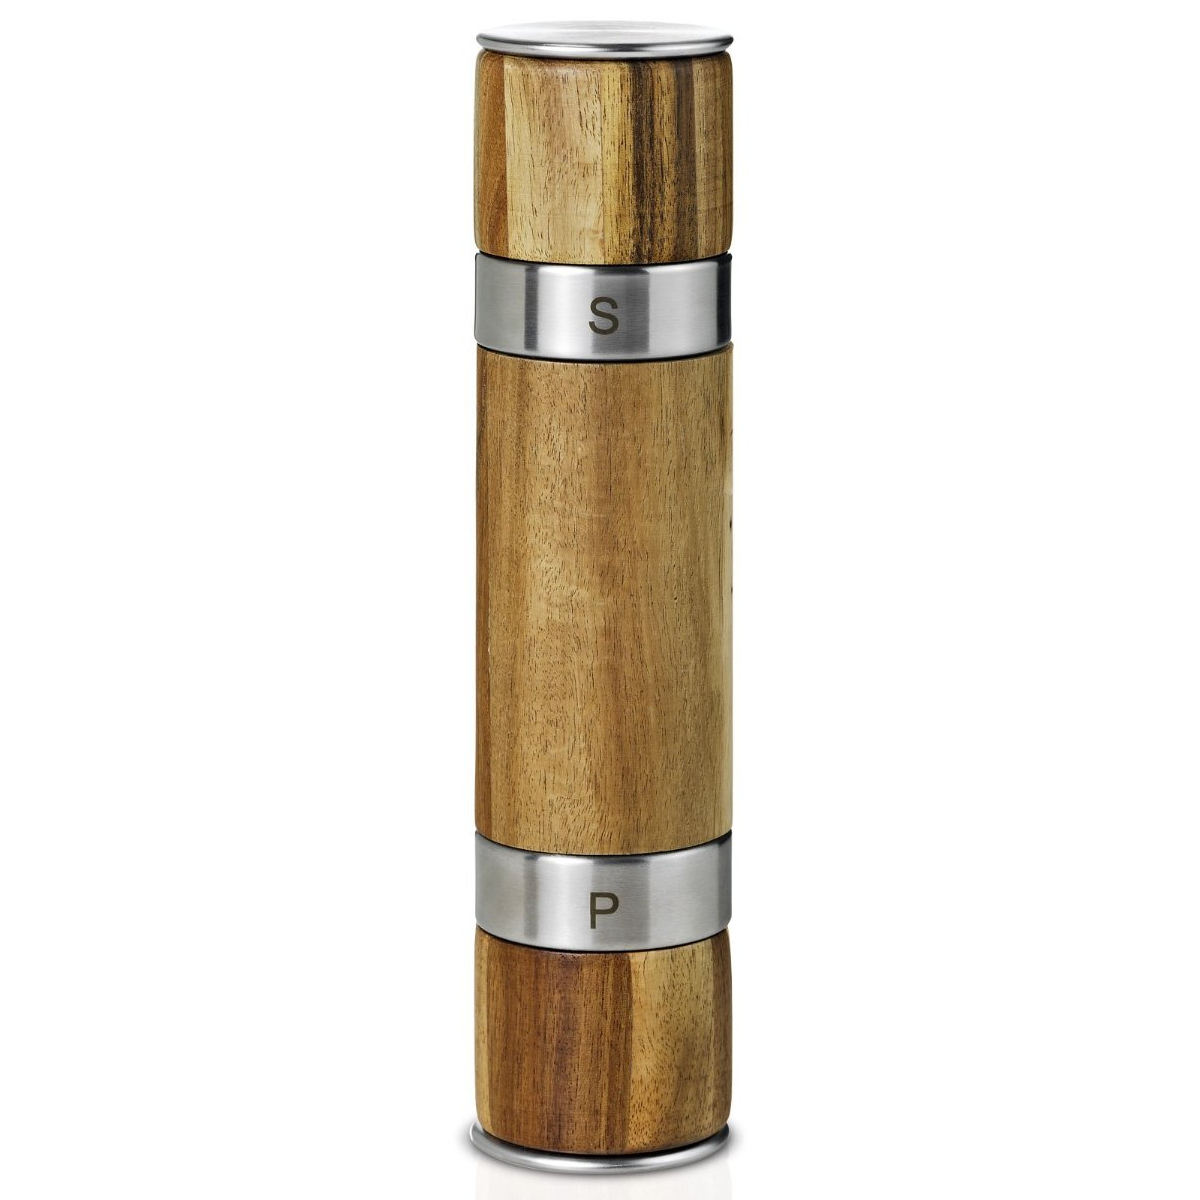 AdHoc Duomill Acacia and Stainless Steel Salt and Pepper Mill